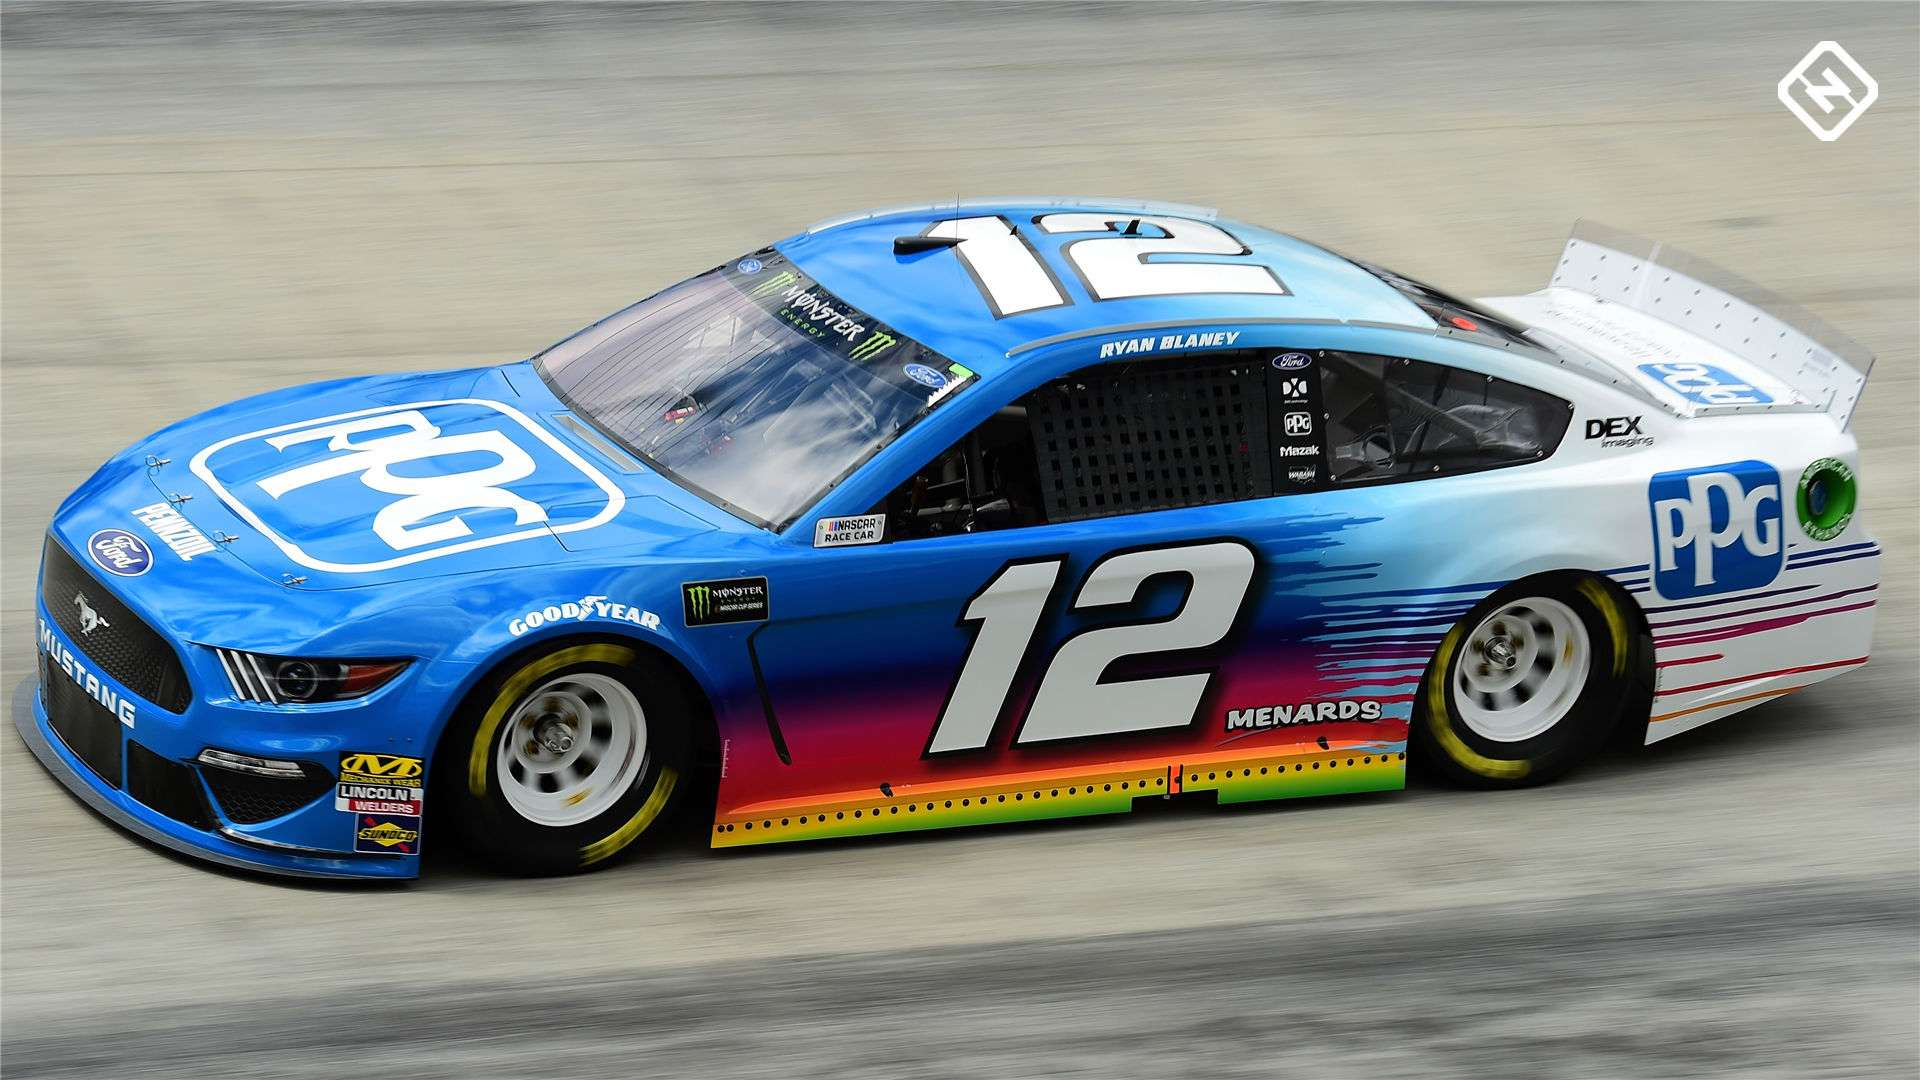 NASCAR's 2019 Cup cars are the most badass-looking cars in